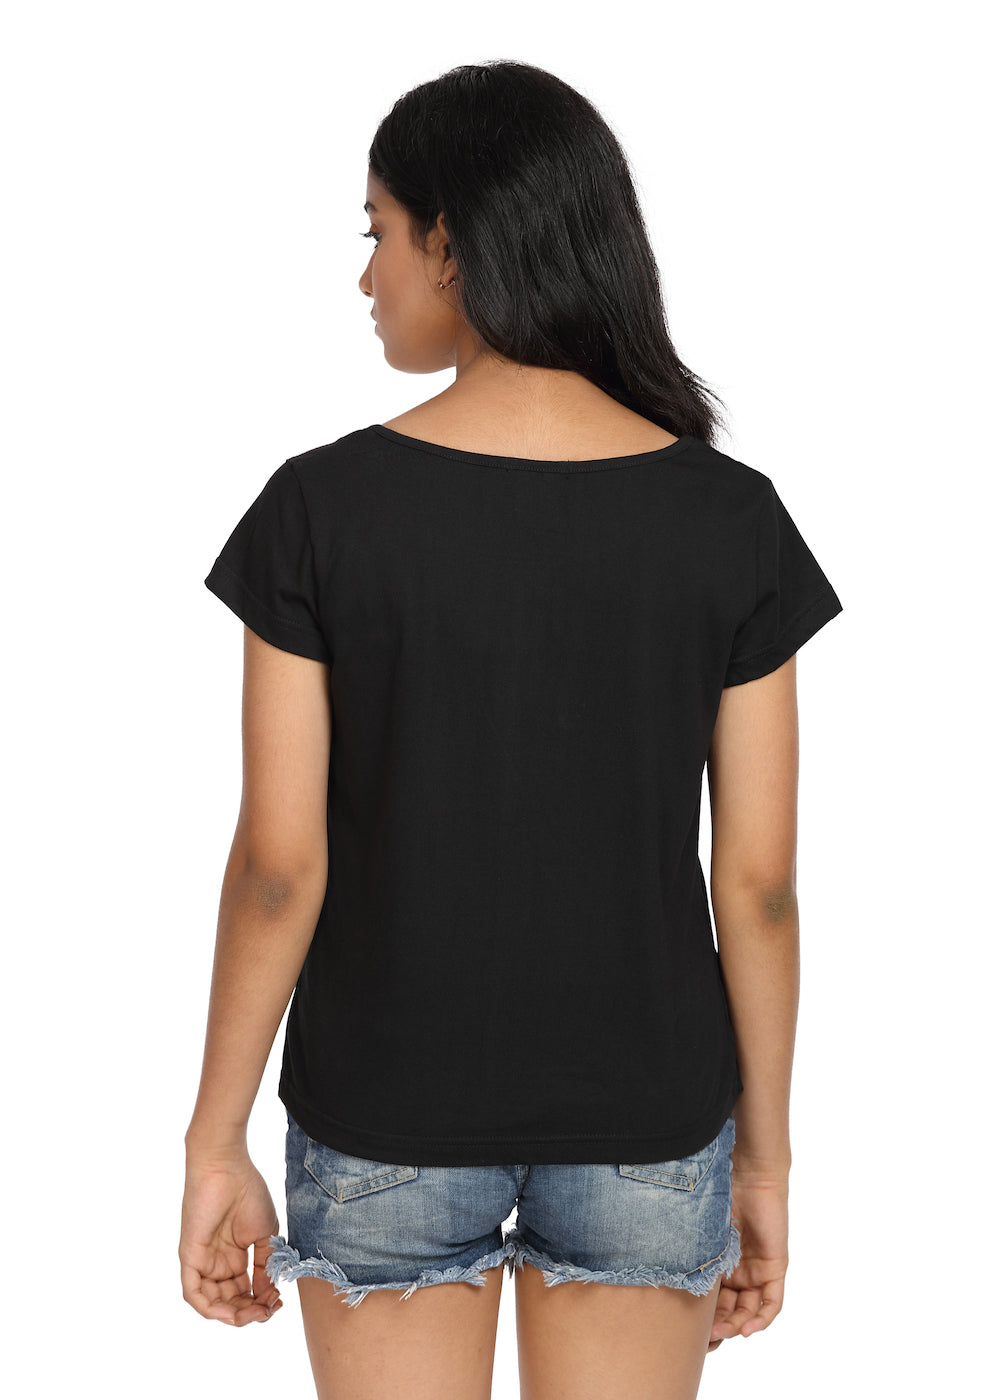 Printed T-shirt Black with Happiness Print - GENZEE